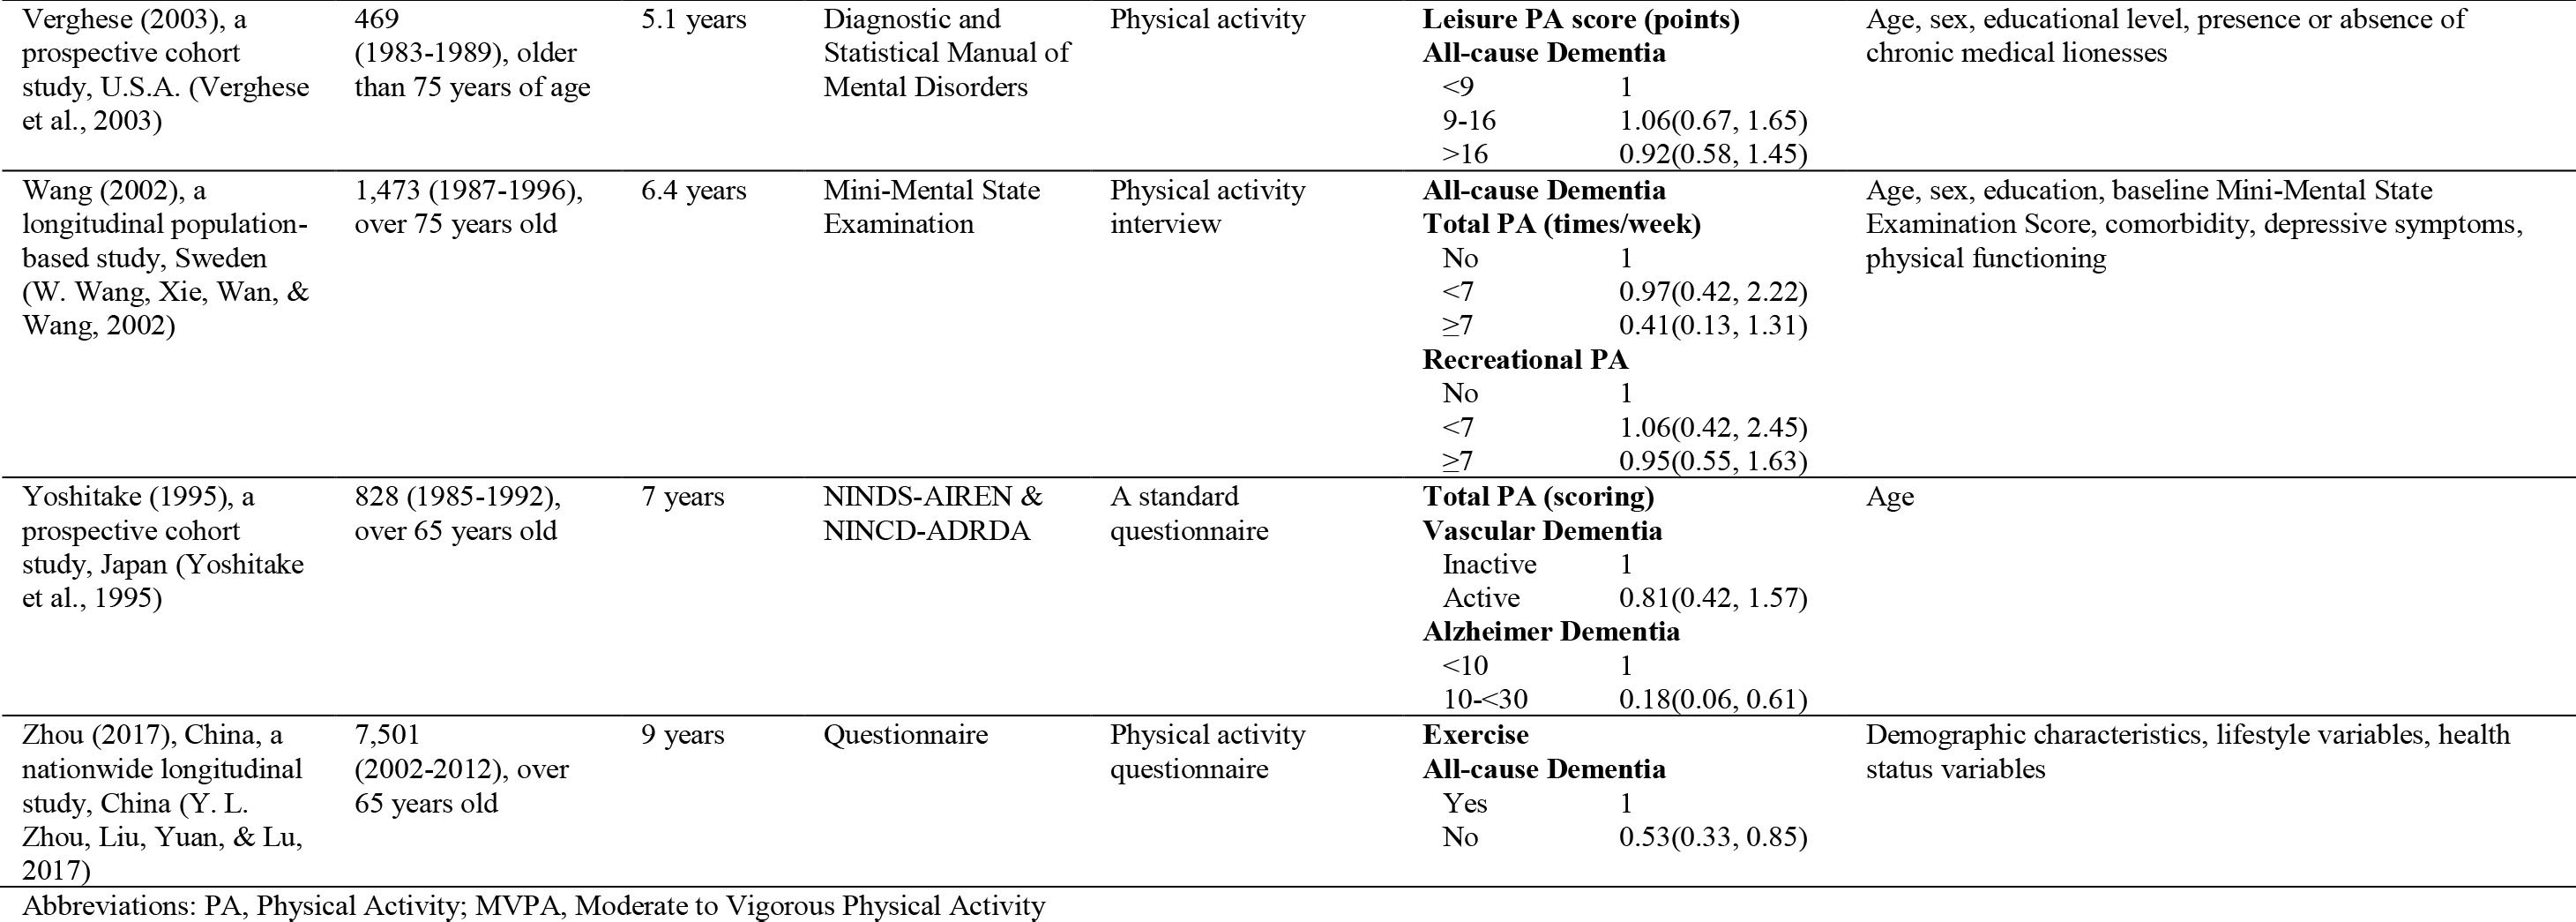 Characteristics of Selected Studies: Physical Activity, and Dementia Risk